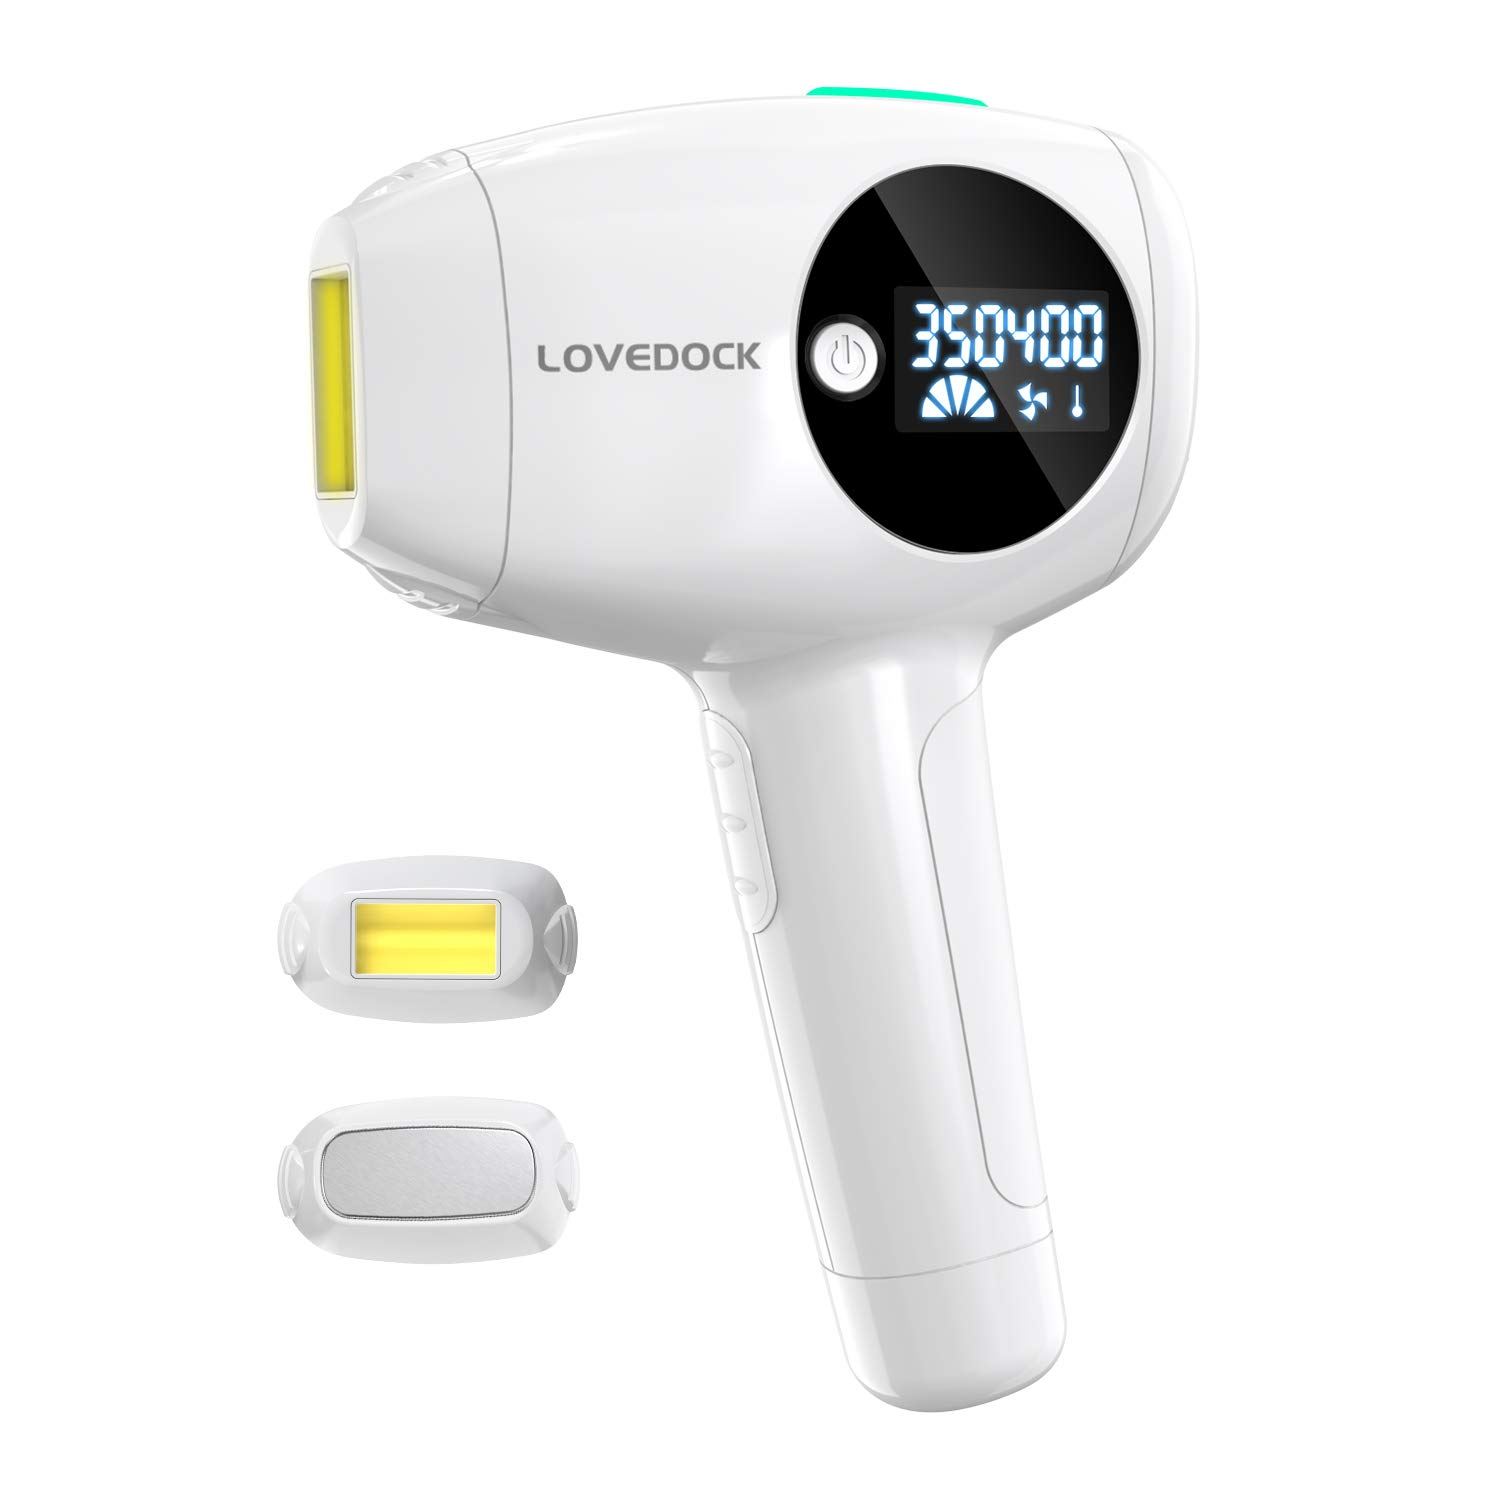 Facial & Body Laser Hair Removal for Women and Man,WPL Permanent Hair Removal Device with Ice Cooling Functions for Women Legs, Underarms, Bikini Area and Facial Hair by LOVE DOCK